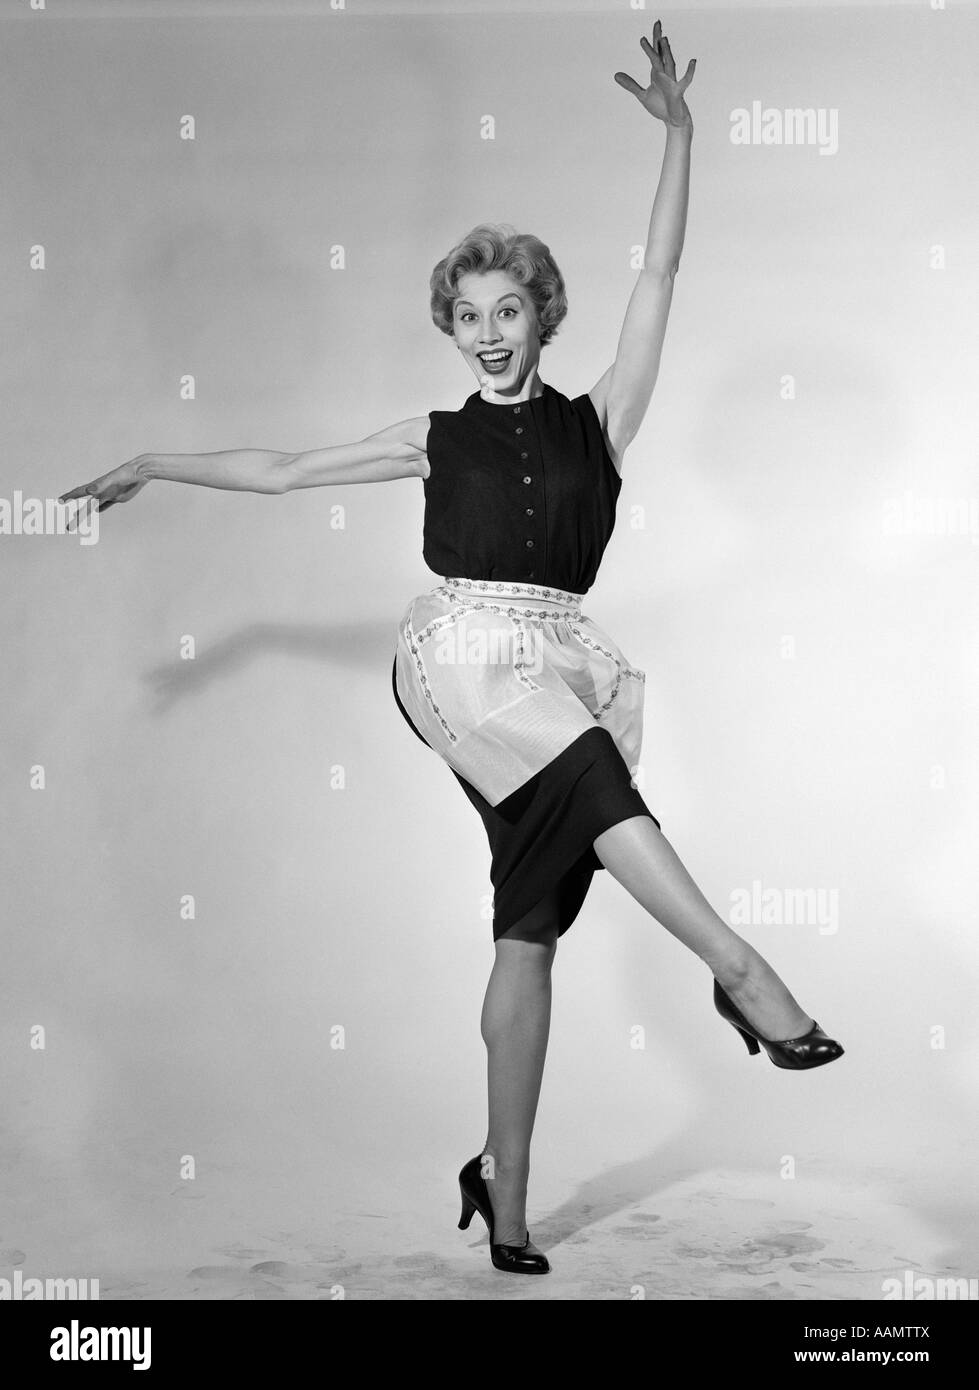 White apron ale - 1950s Blonde Woman In Apron Housewife Dancing Kicking Her Leg Looking At Camera Stock Image